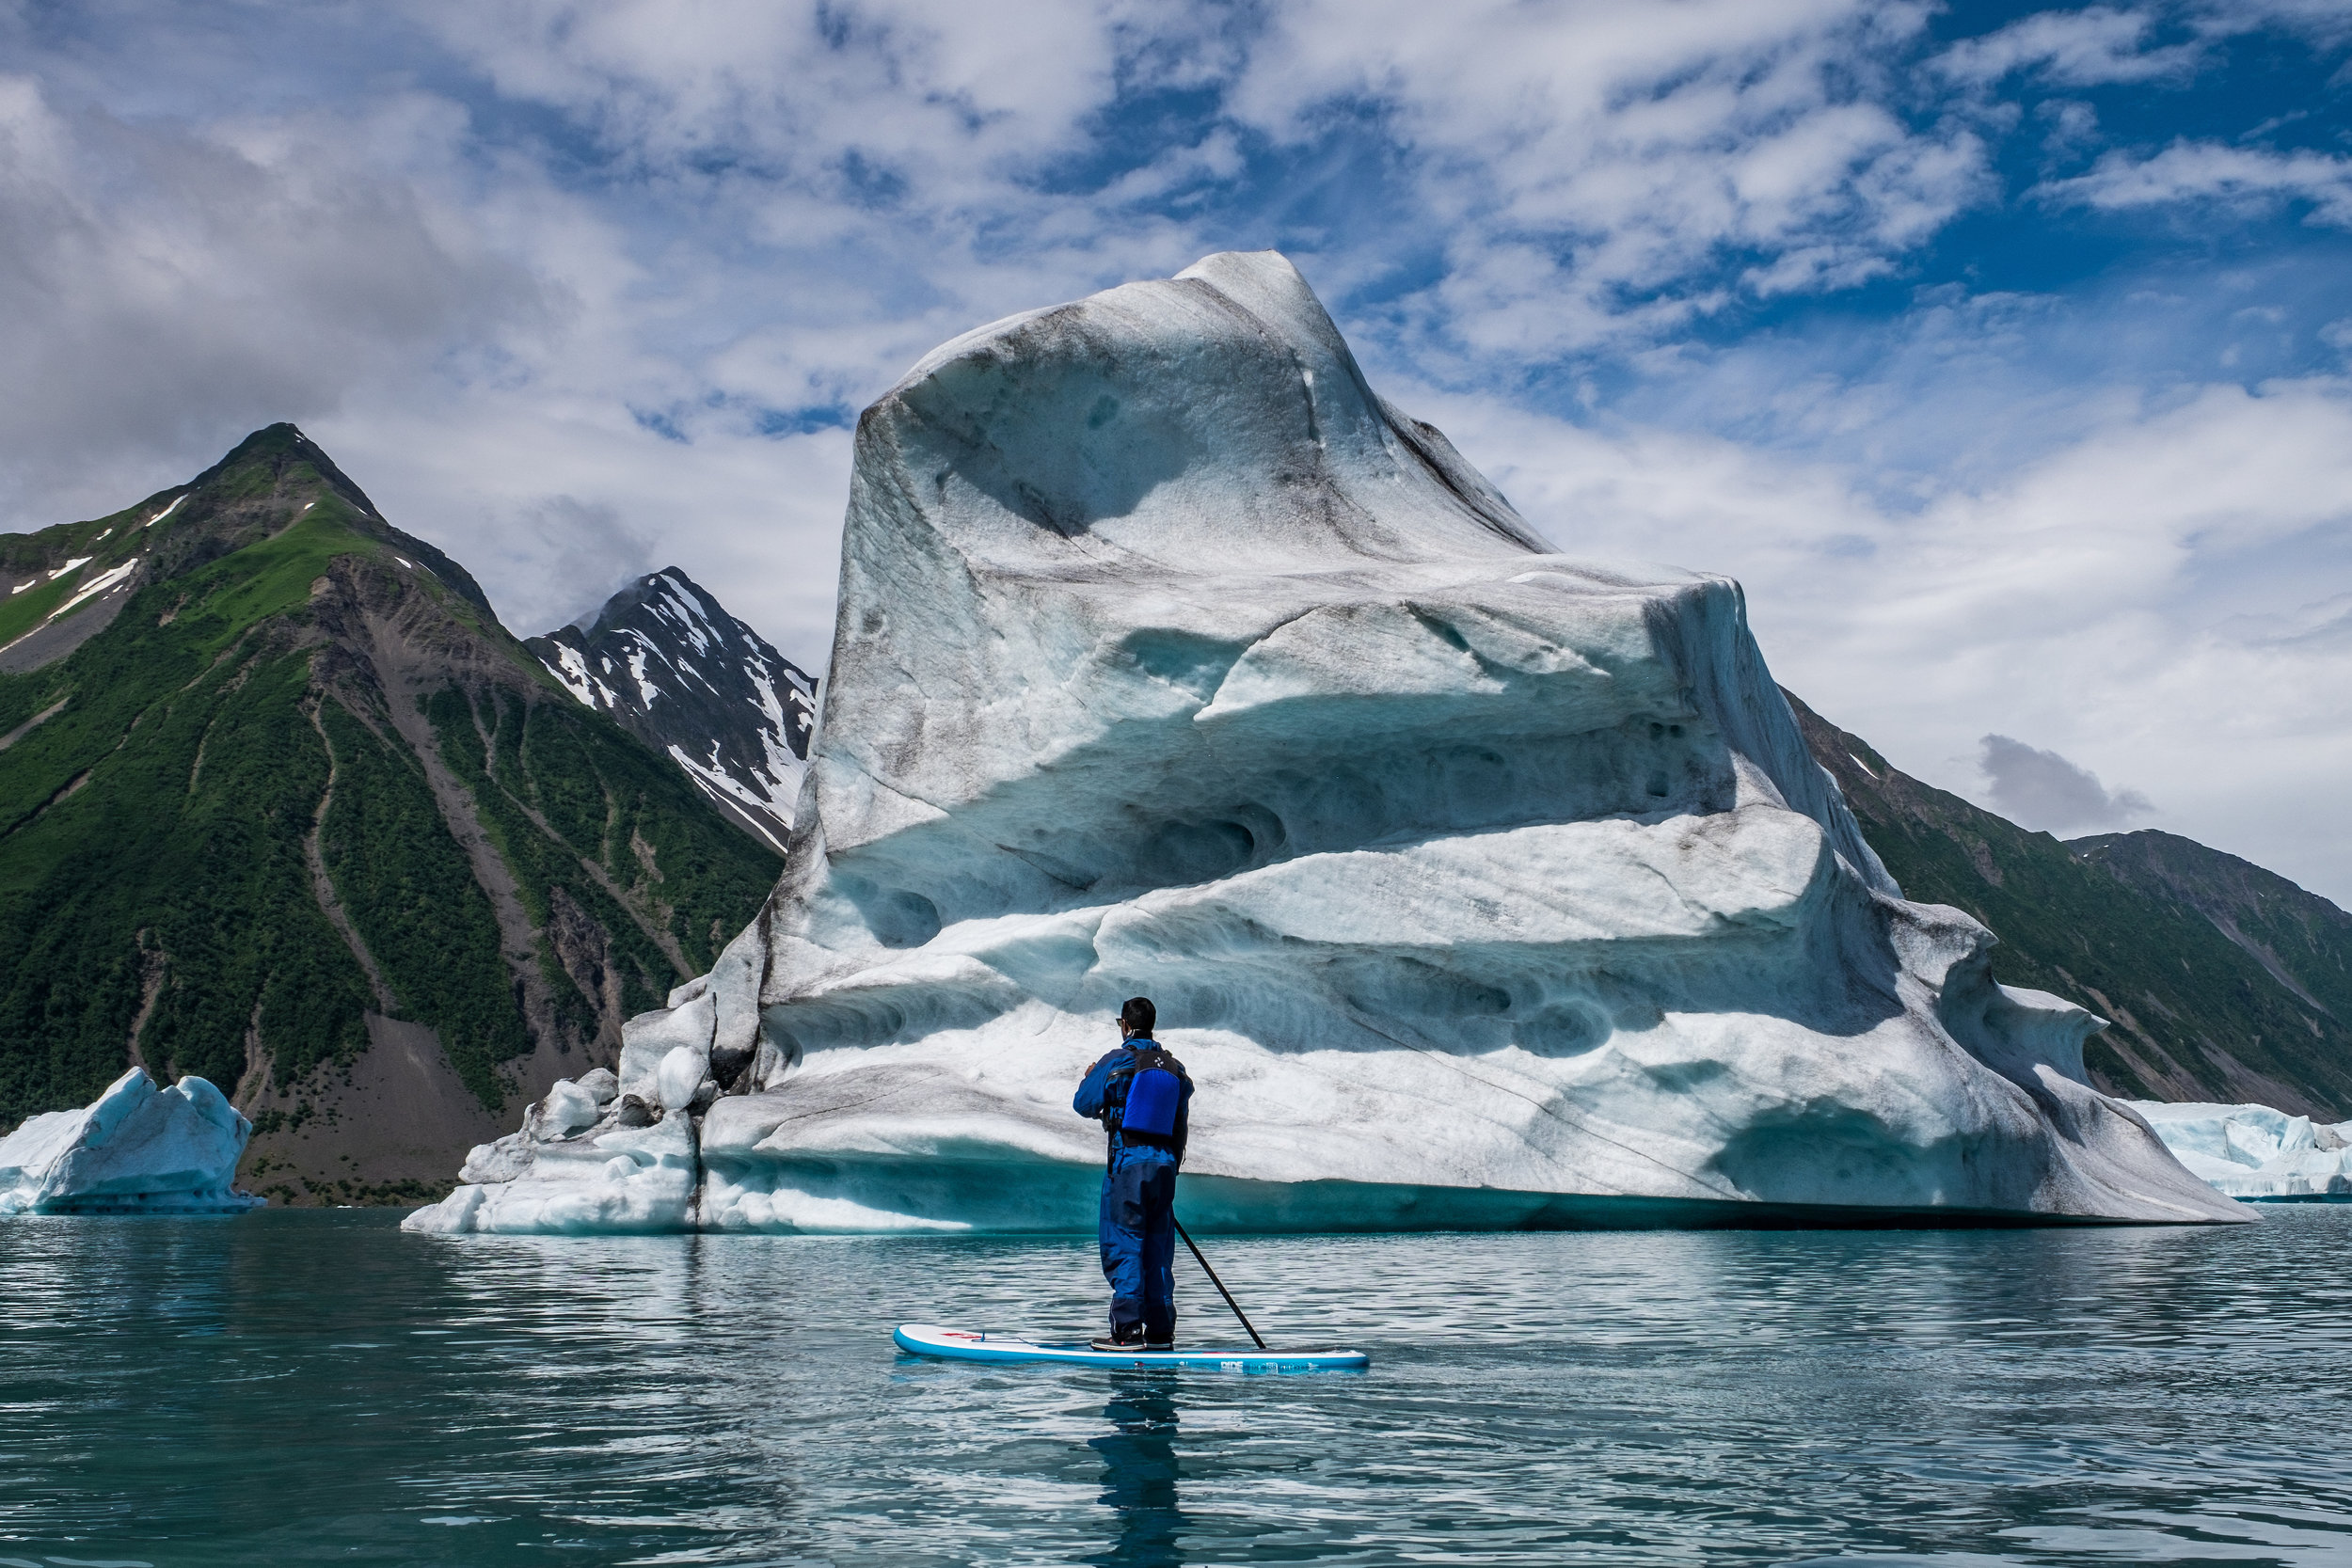 Stand up paddle with our new friends near Bear Glacier in Kenai Fjords National Park in Alaska. Credit: JONATHAN IRISH